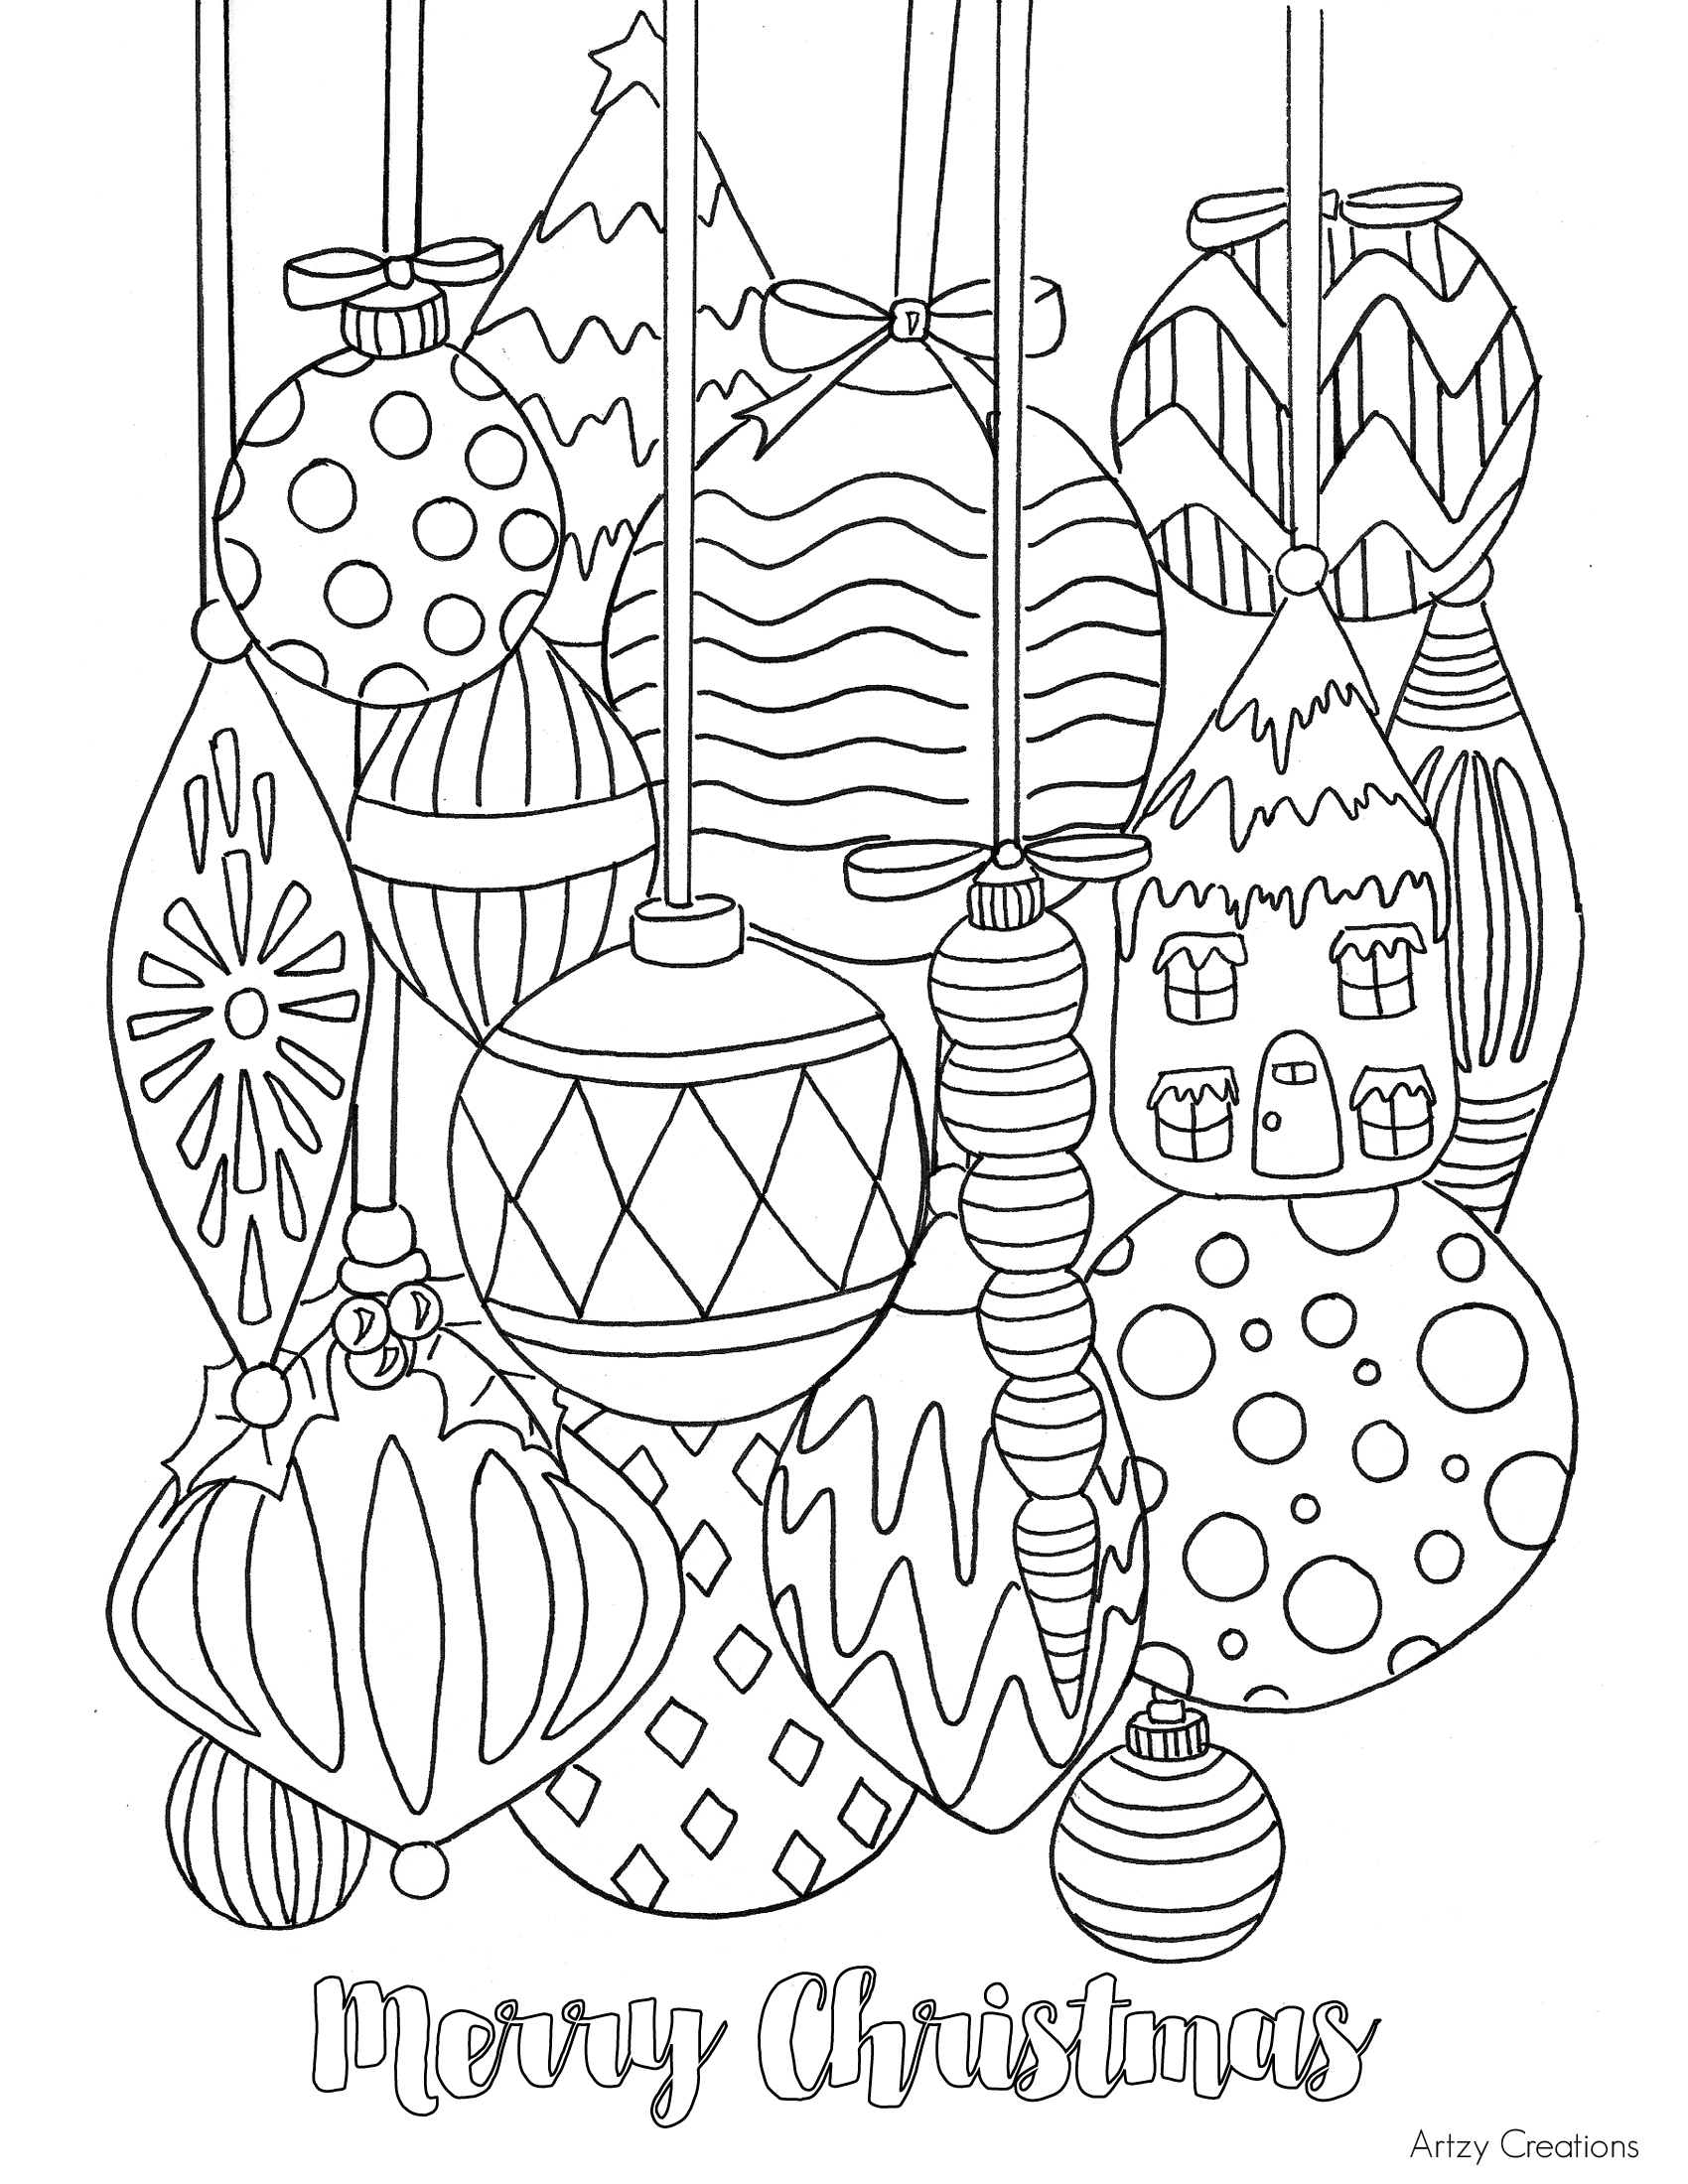 Free christmas ornament coloring page tgif this for Christmas printables coloring pages